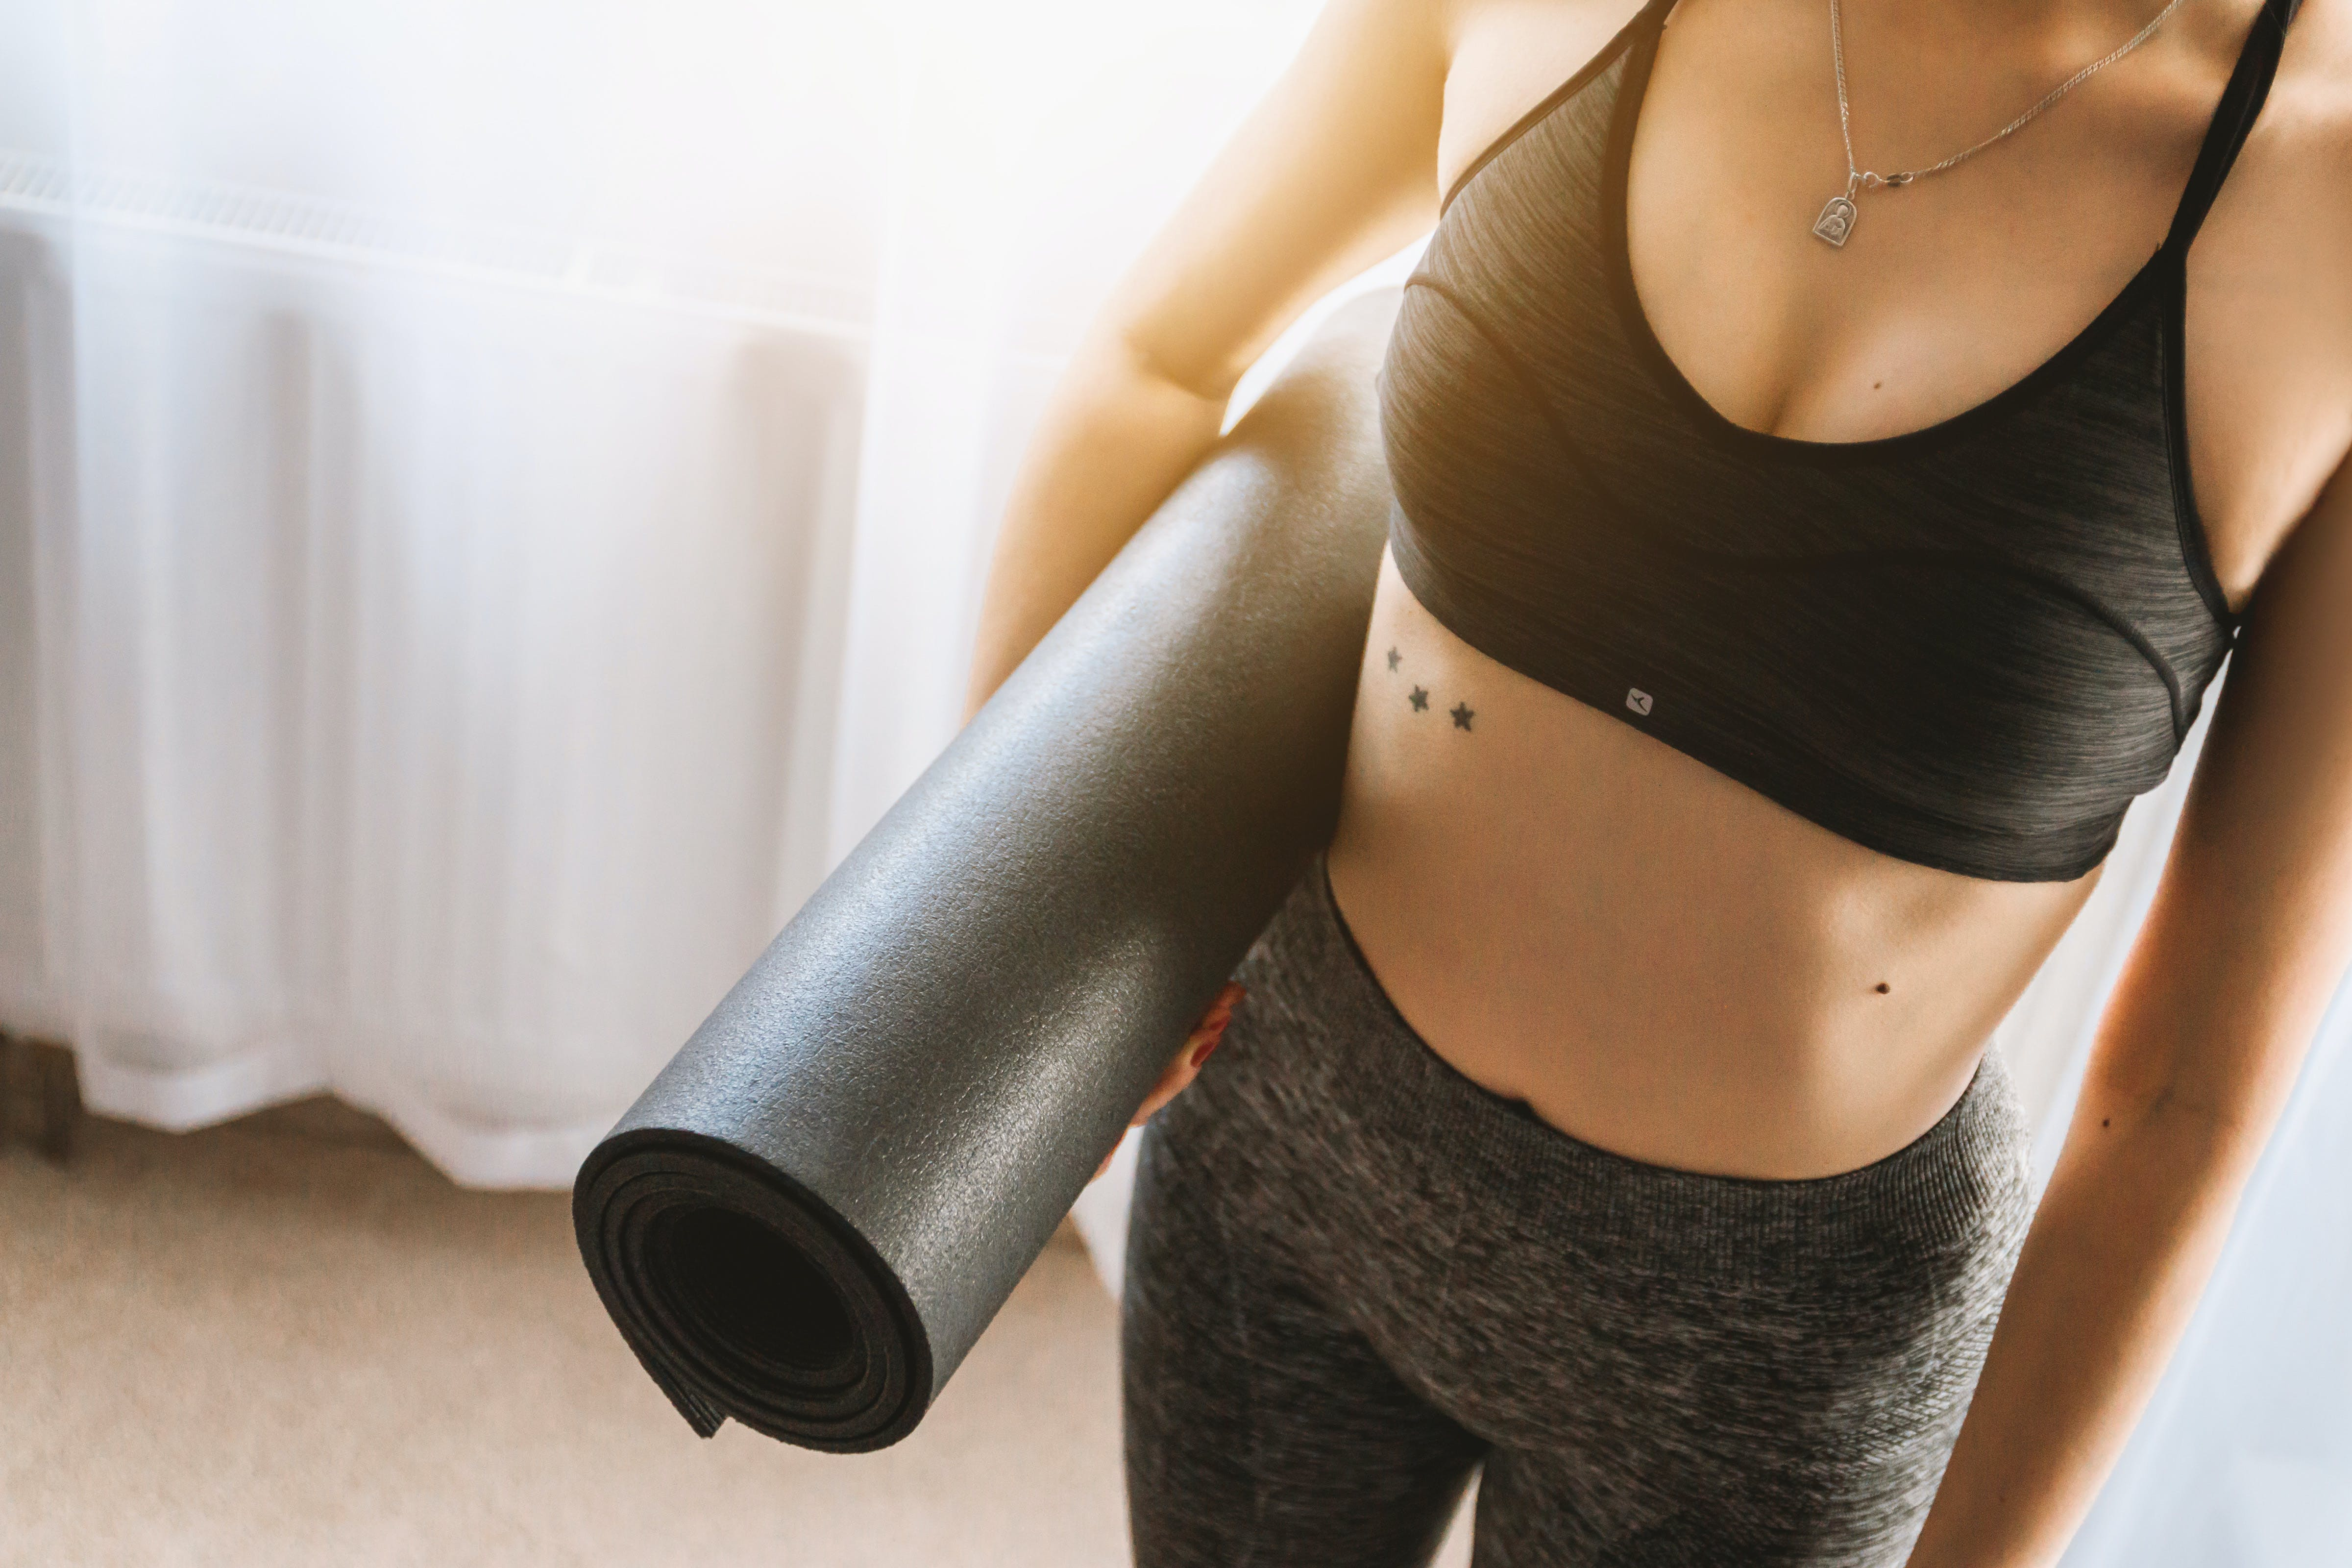 Woman in Black Sports Bra With Grey Leggings Carrying Yoga Mat